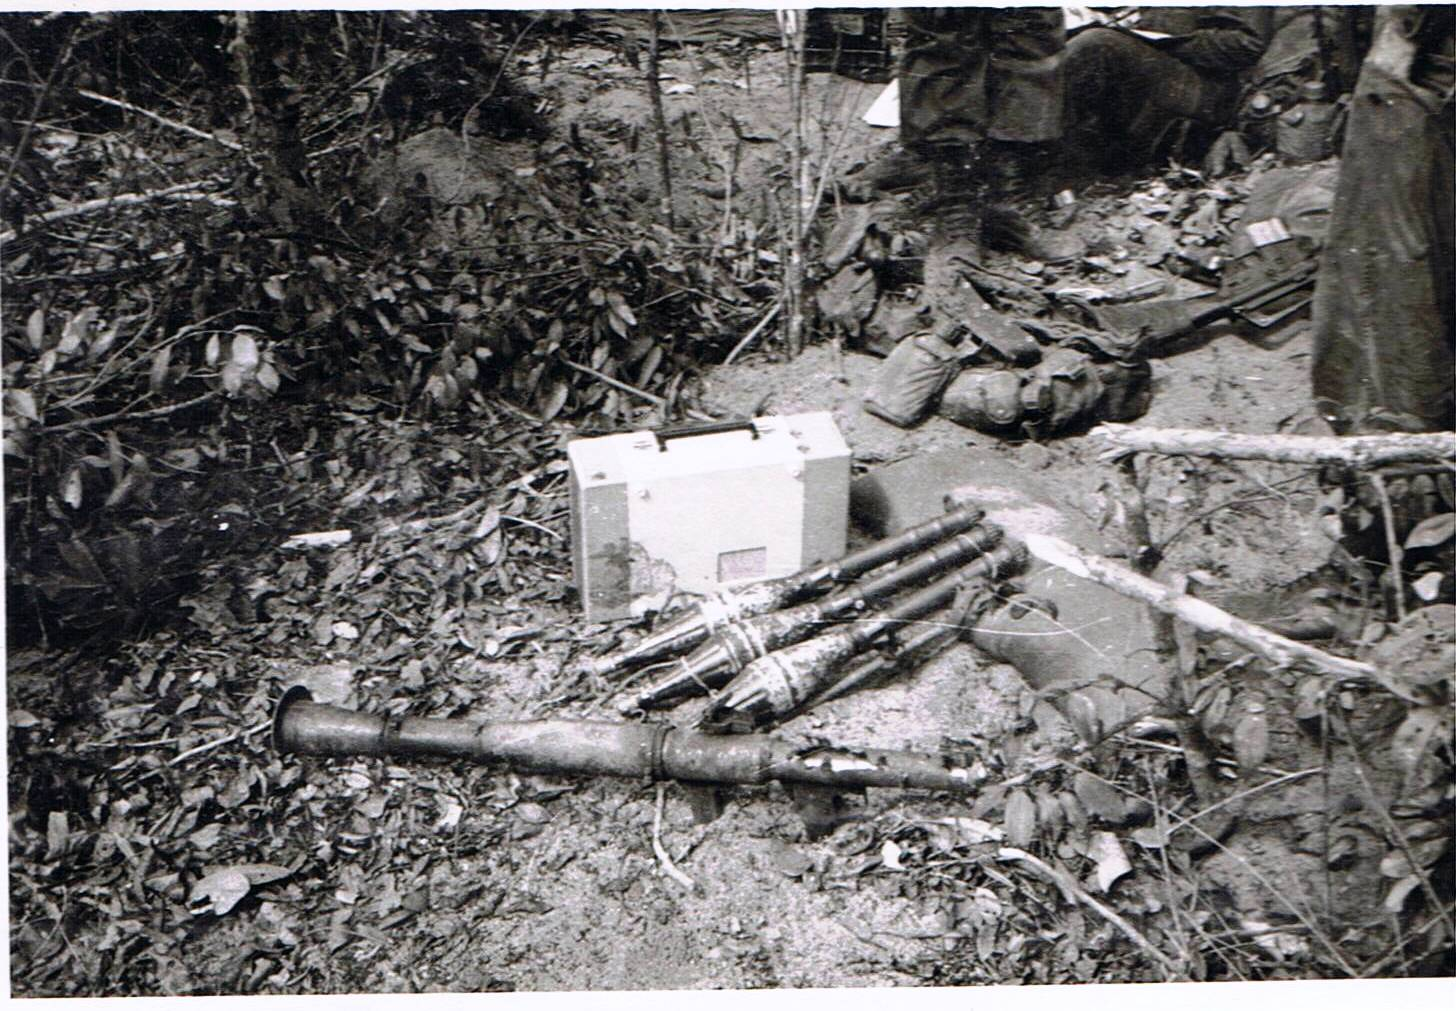 cache found under tree in Light Green area 18 March 1970 [Brooker]